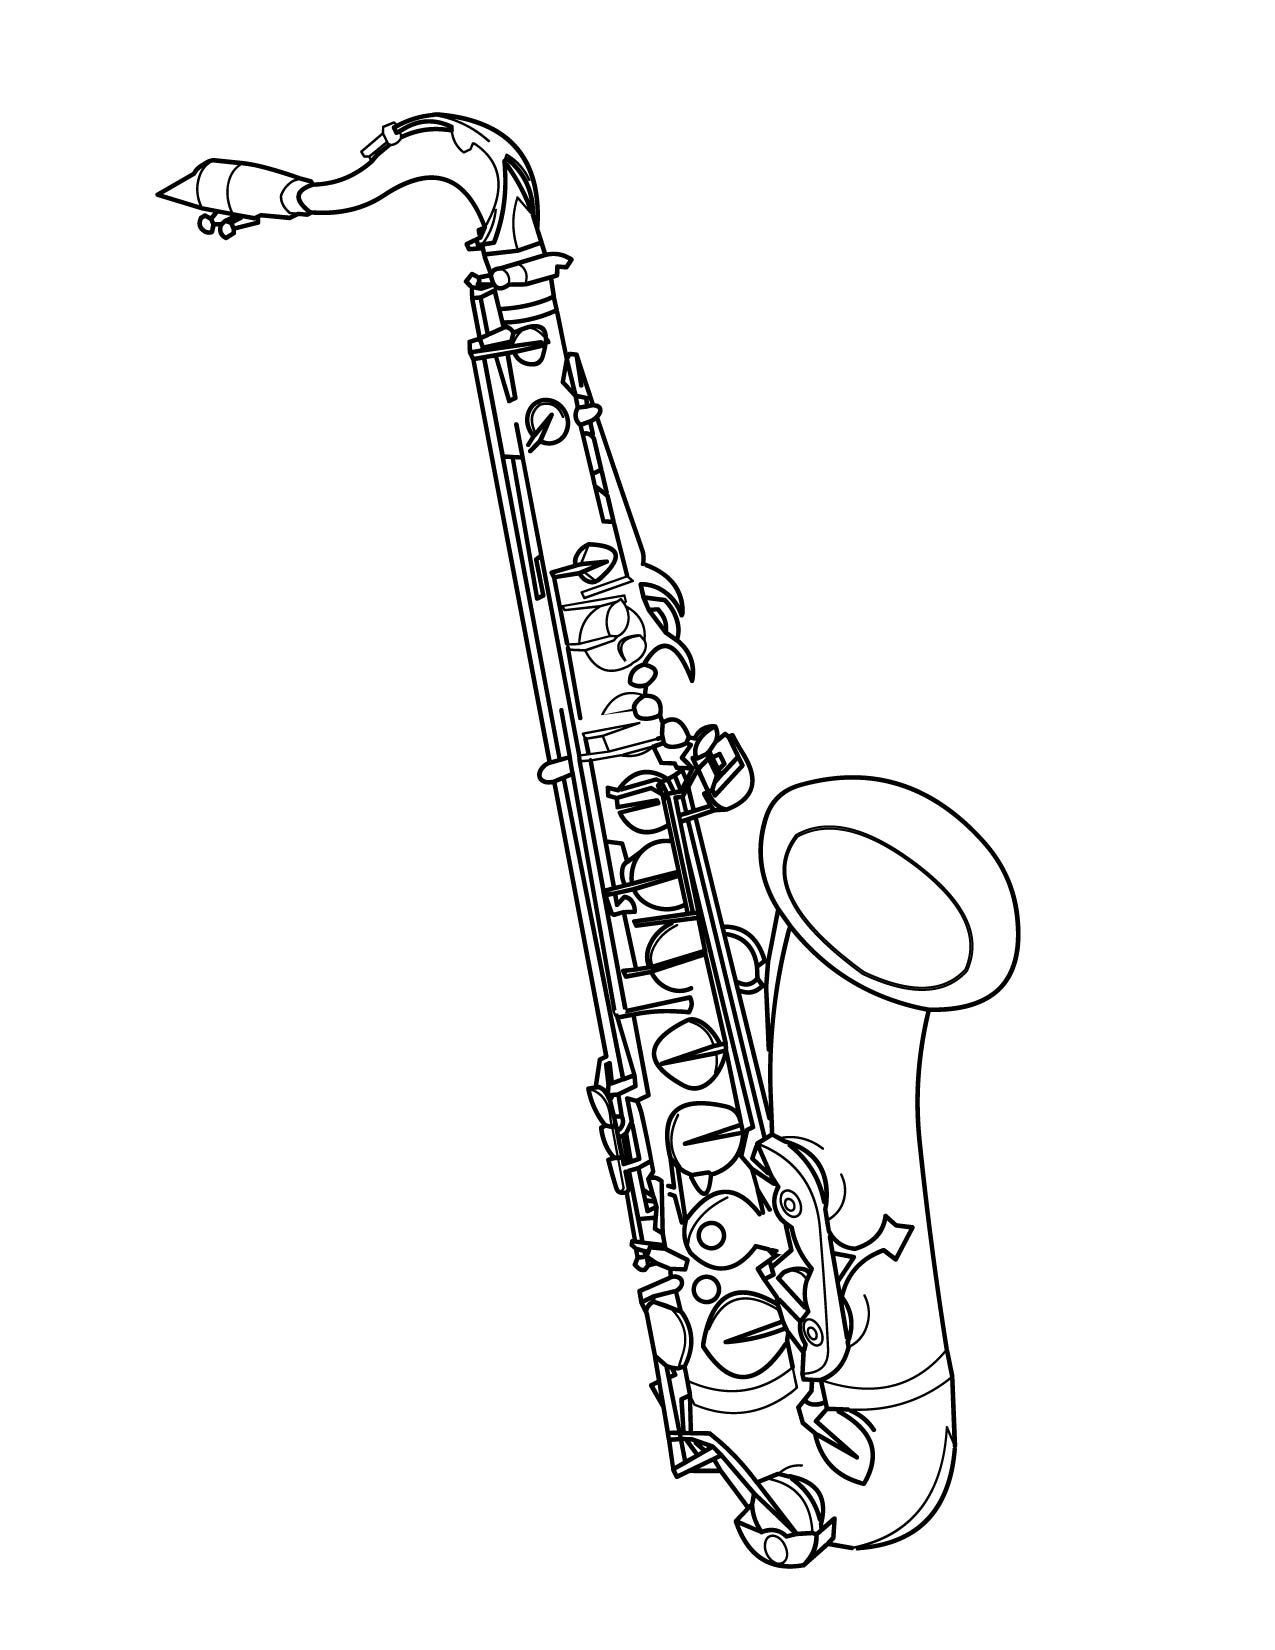 saxophone coloring pages saxophone coloring page free printable coloring pages coloring pages saxophone